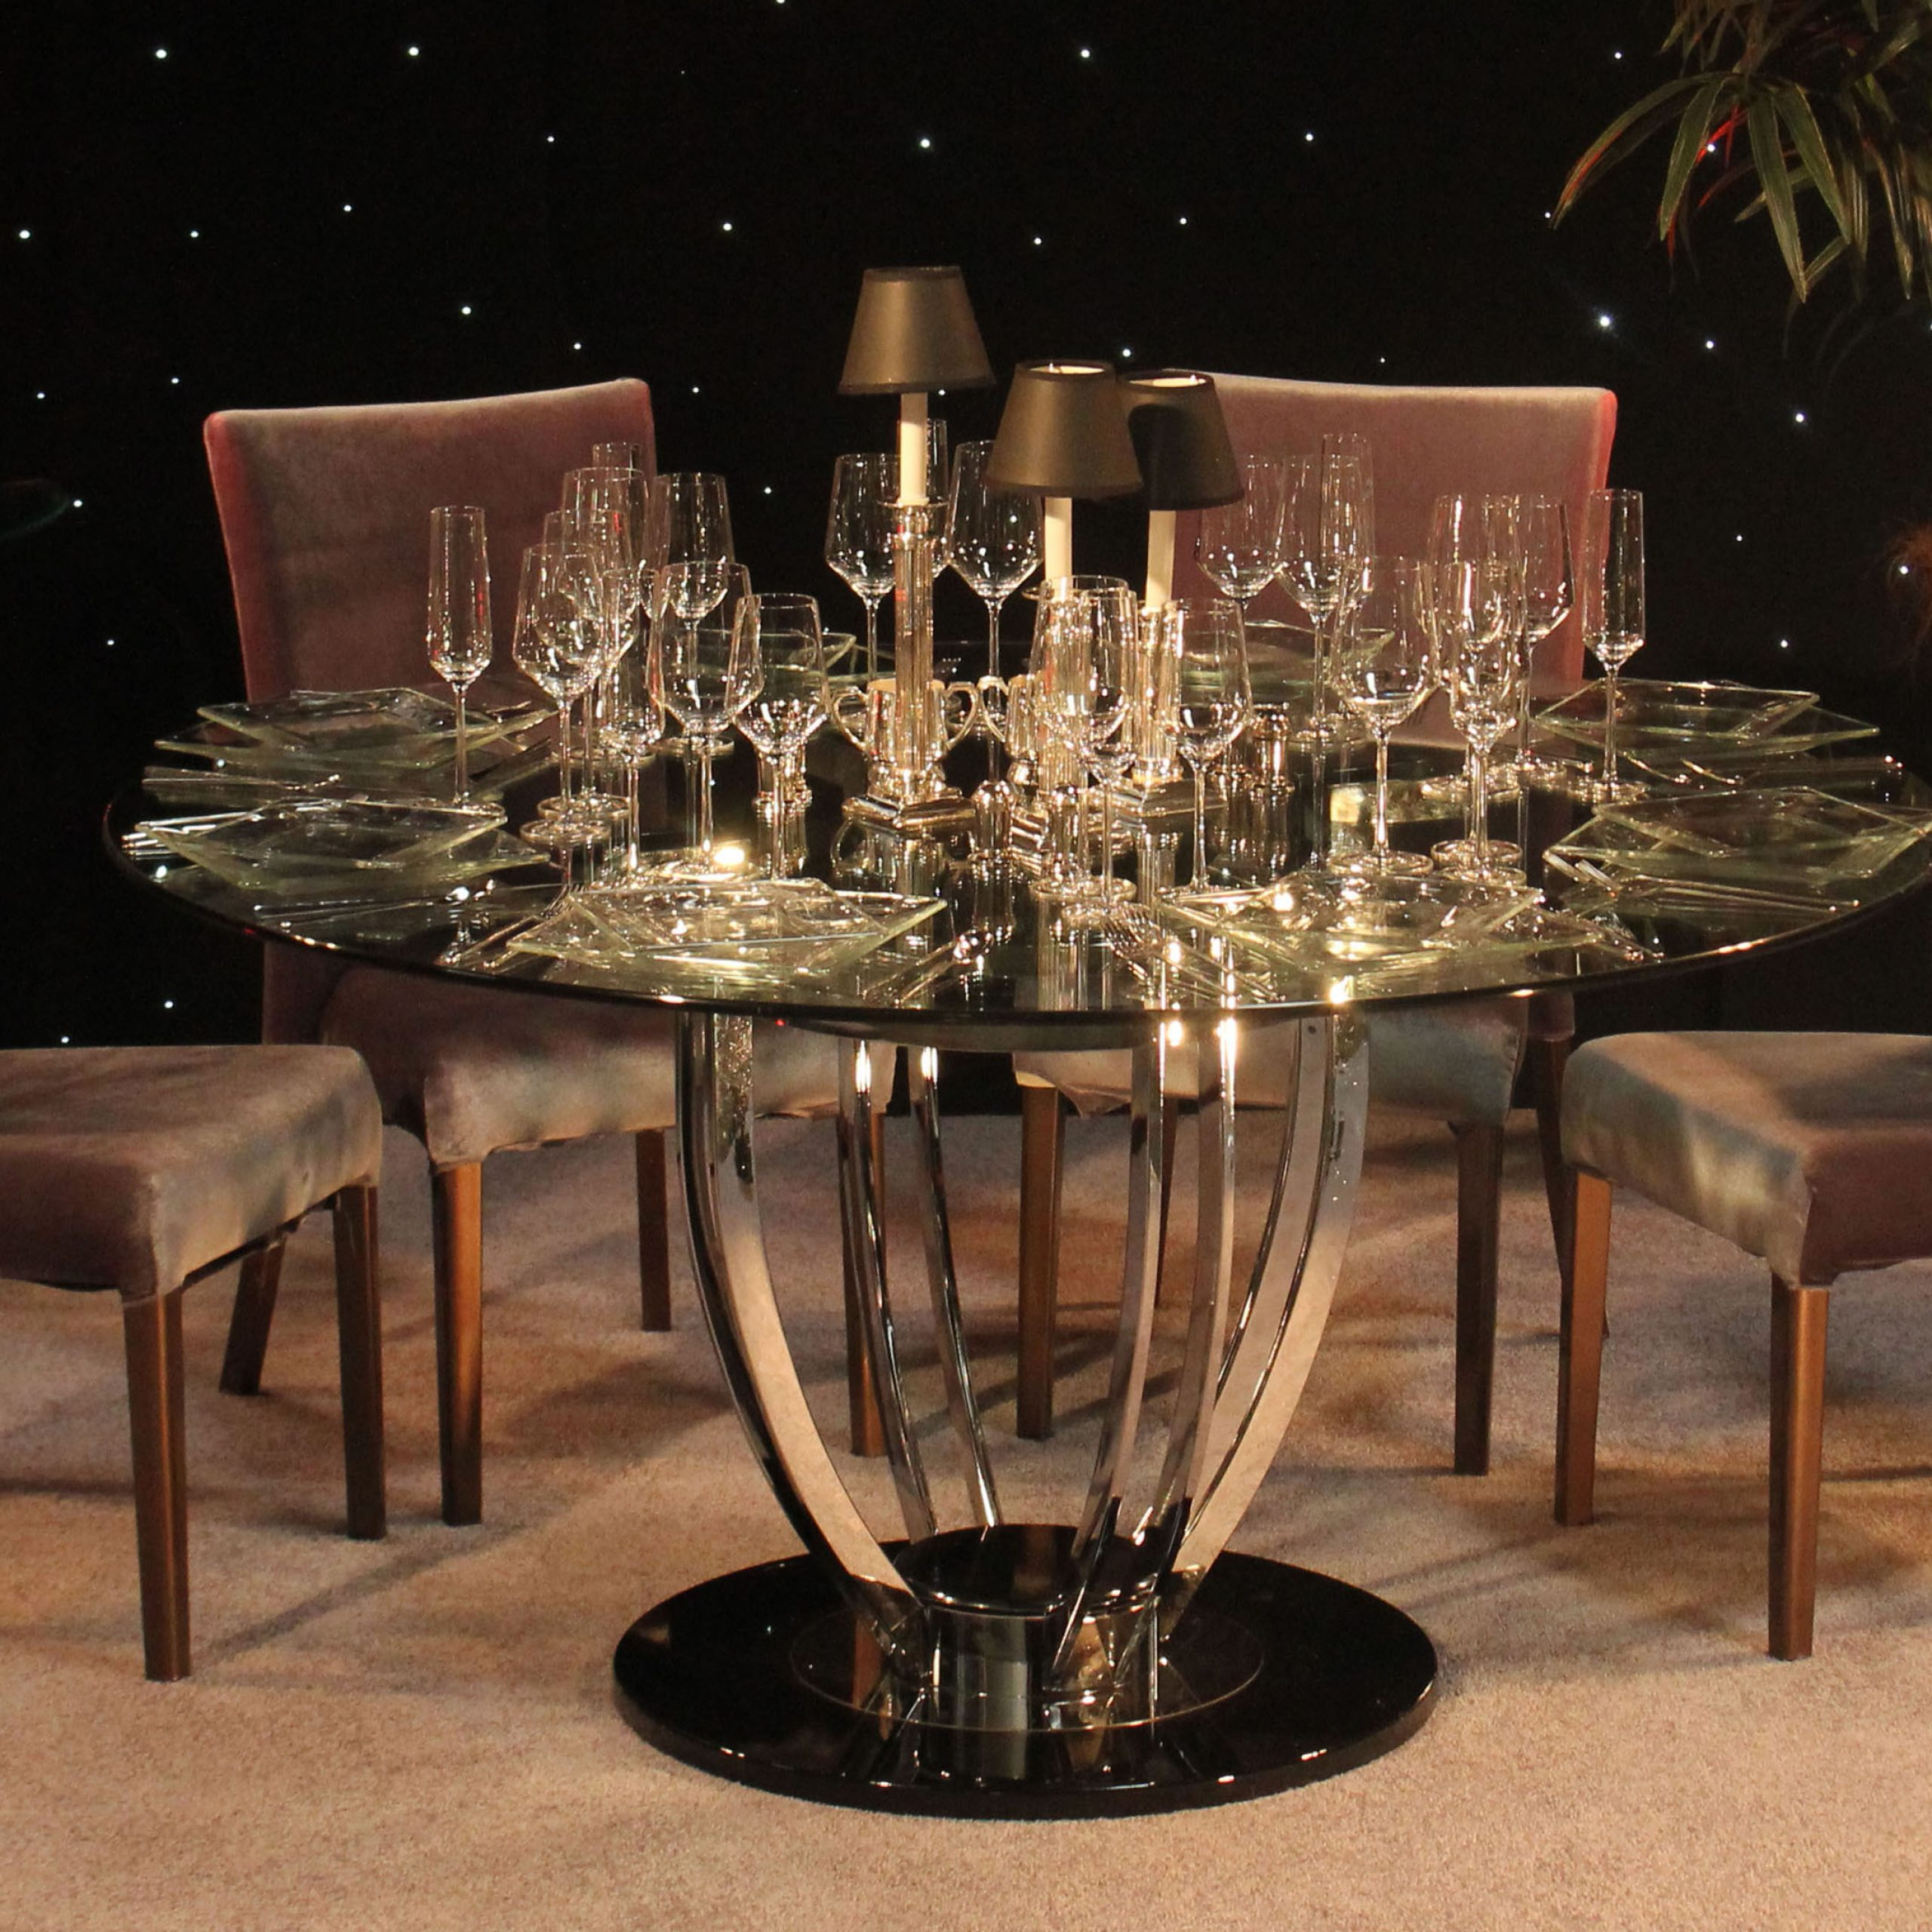 Town With Regard To Best And Newest 4 Seater Round Wooden Dining Tables With Chrome Legs (Gallery 22 of 30)